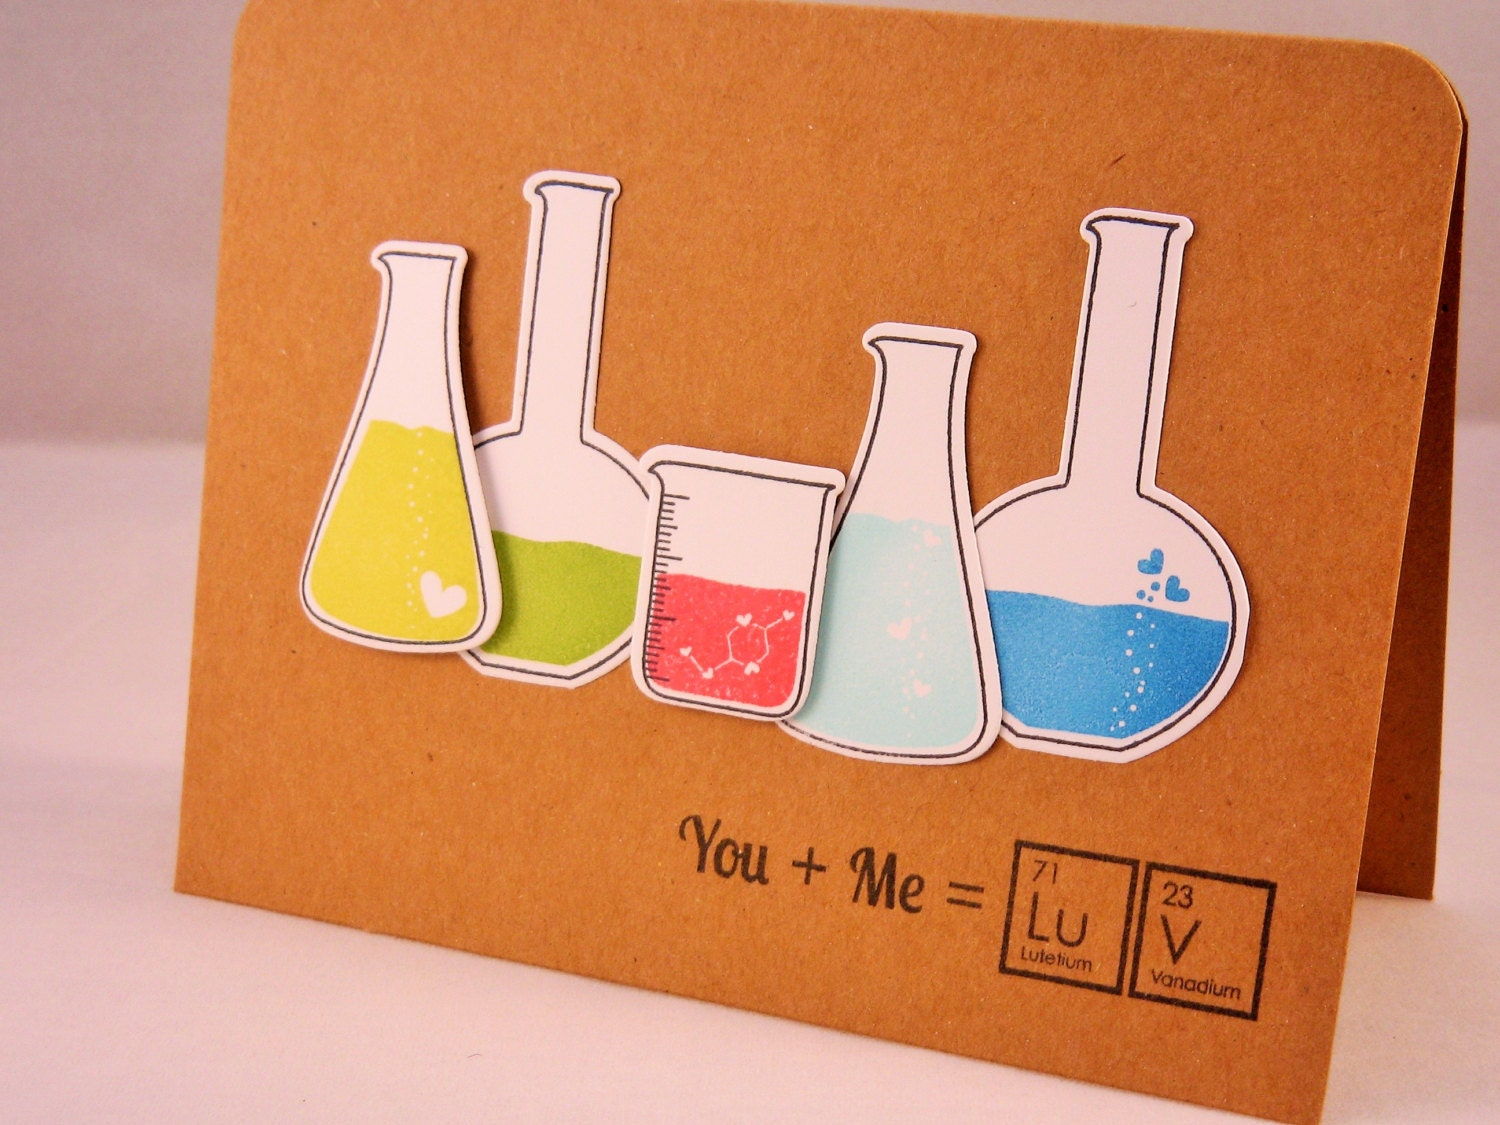 Geeky valentine card i love you card anniversary card How to make a valentine card for your girlfriend